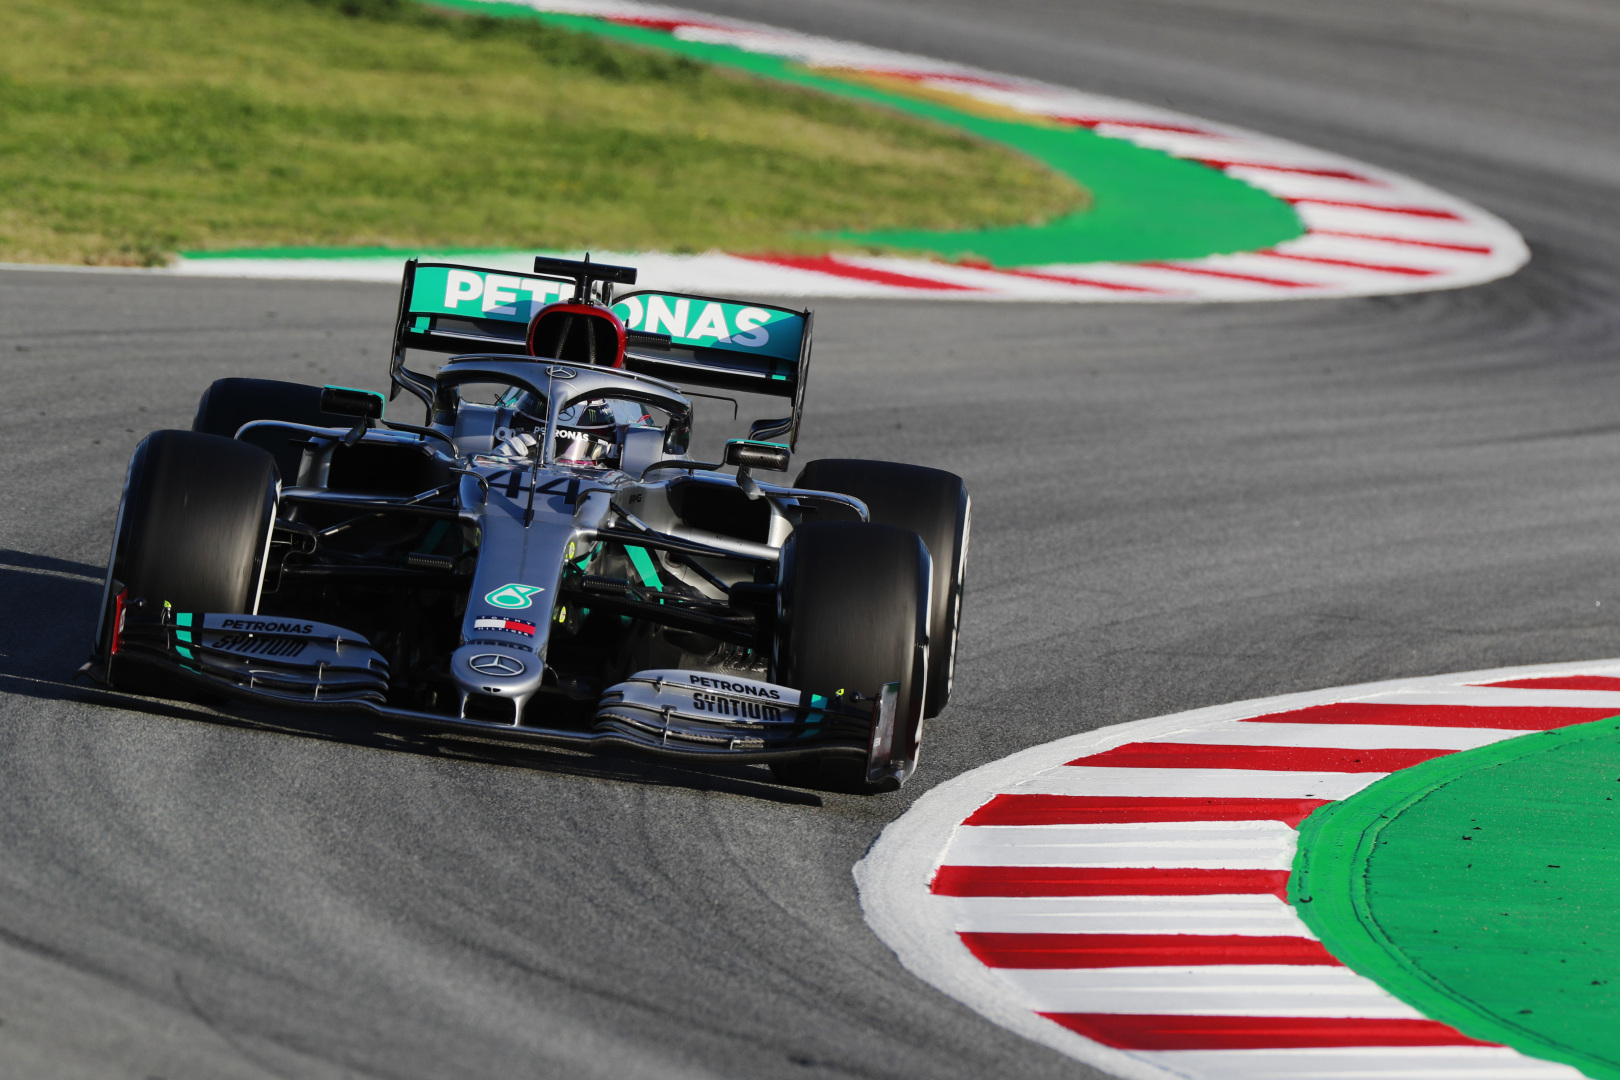 Hamilton tops opening day of F1 testing - Speedcafe